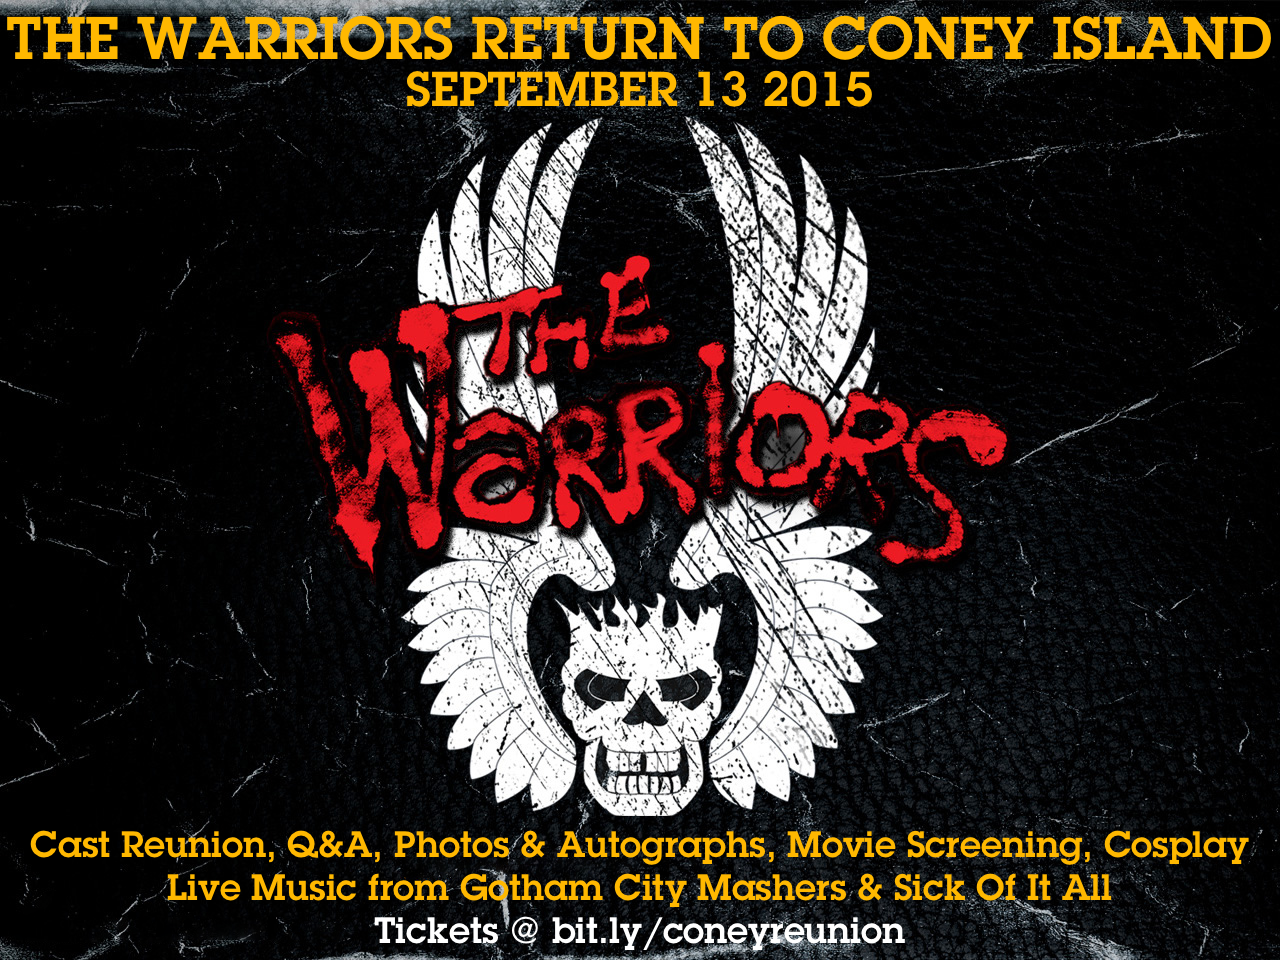 The Warriors Movie Site - Coney Island Reunion